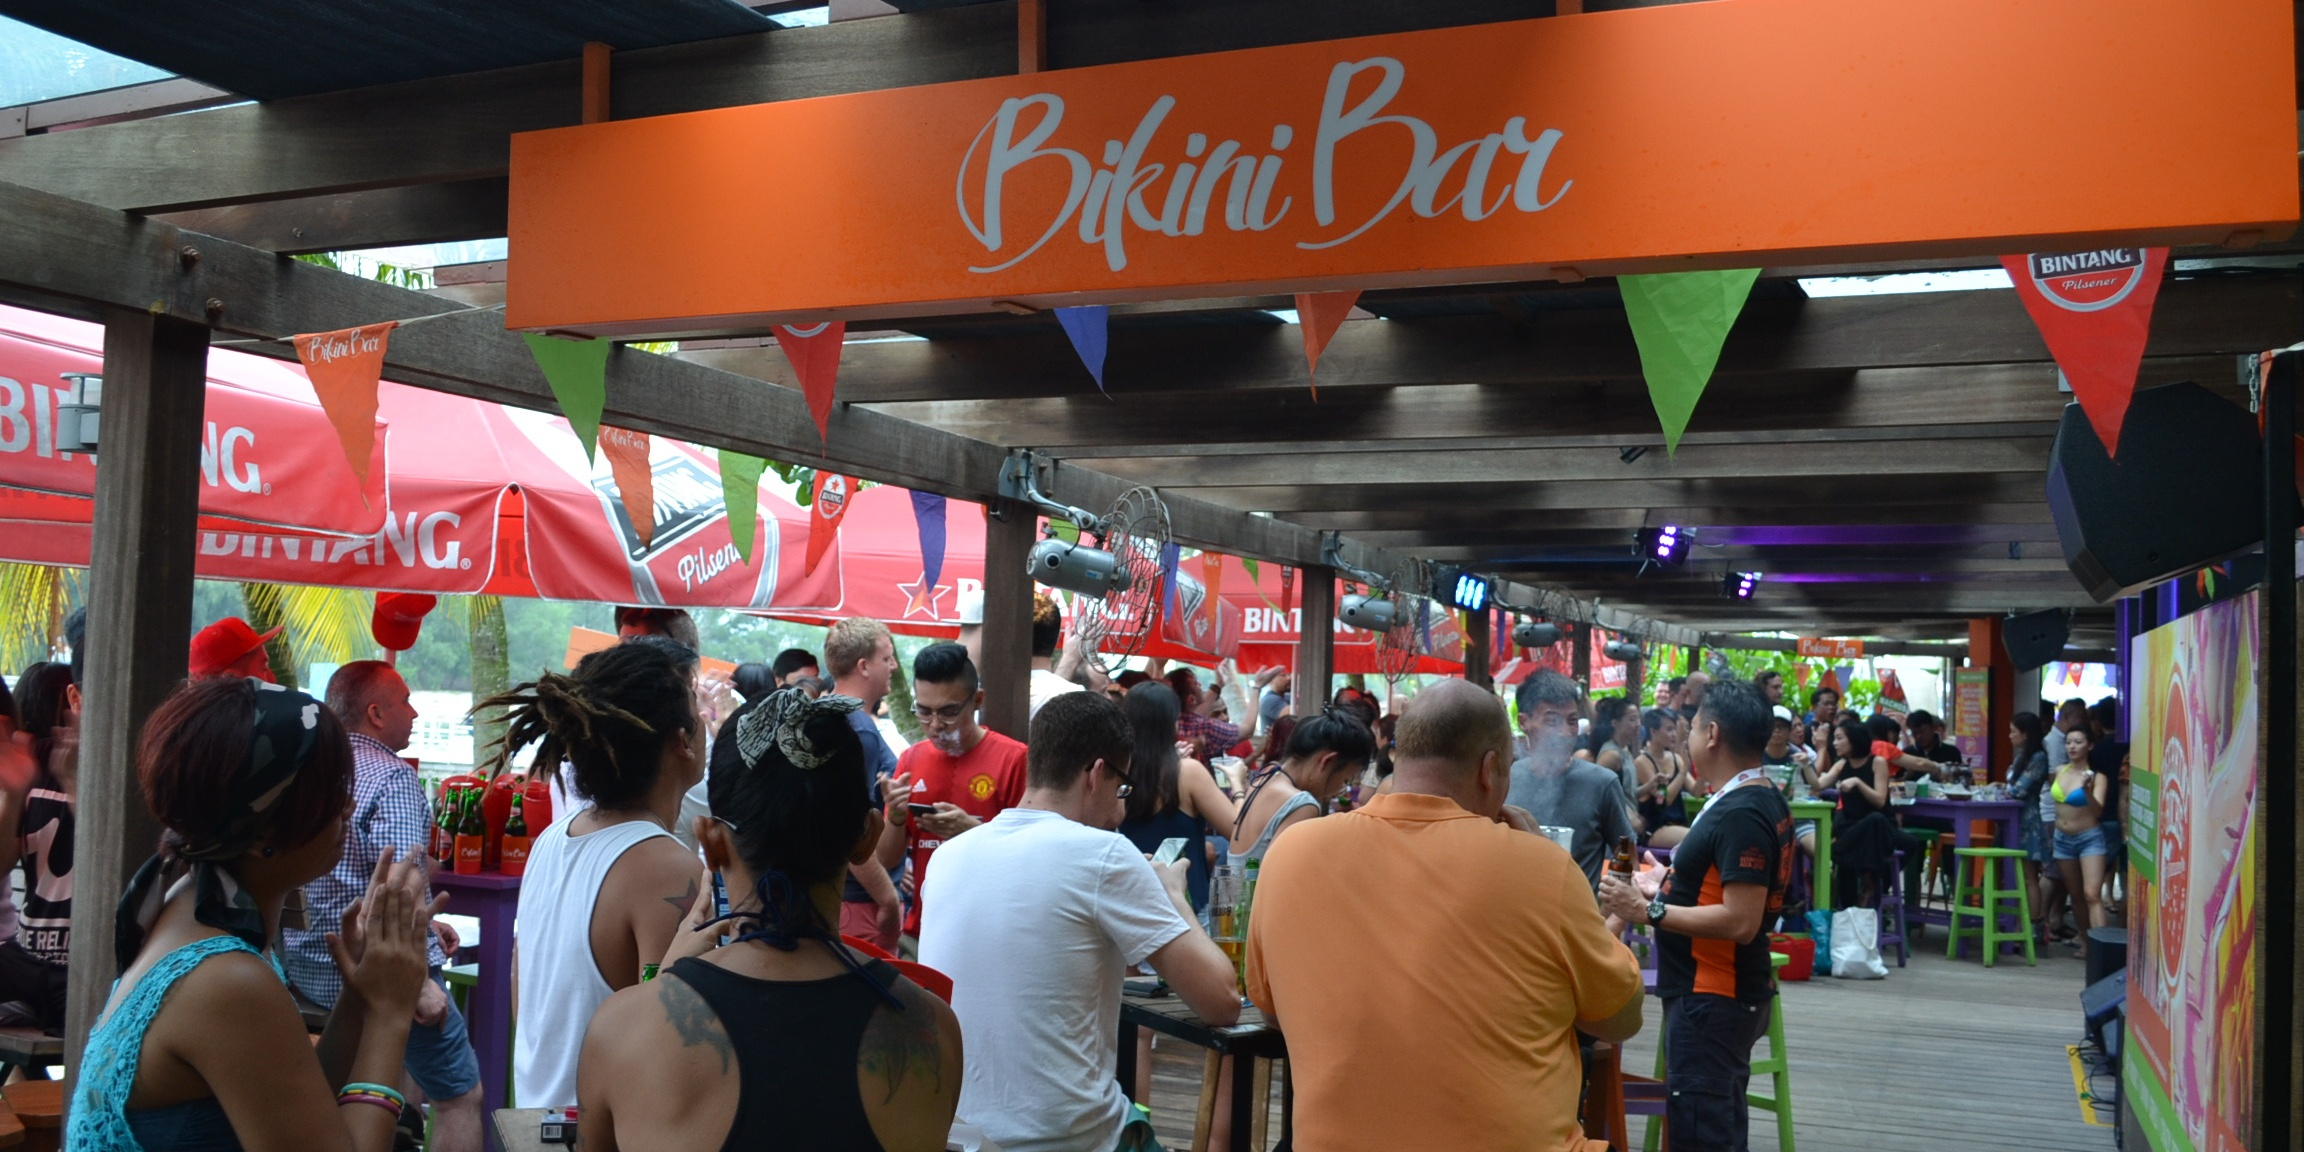 Bikini Bar at Sentosa to kick off live rock performance series Beerkini Rocks with Sweatshop Jam and The Illicit Edition